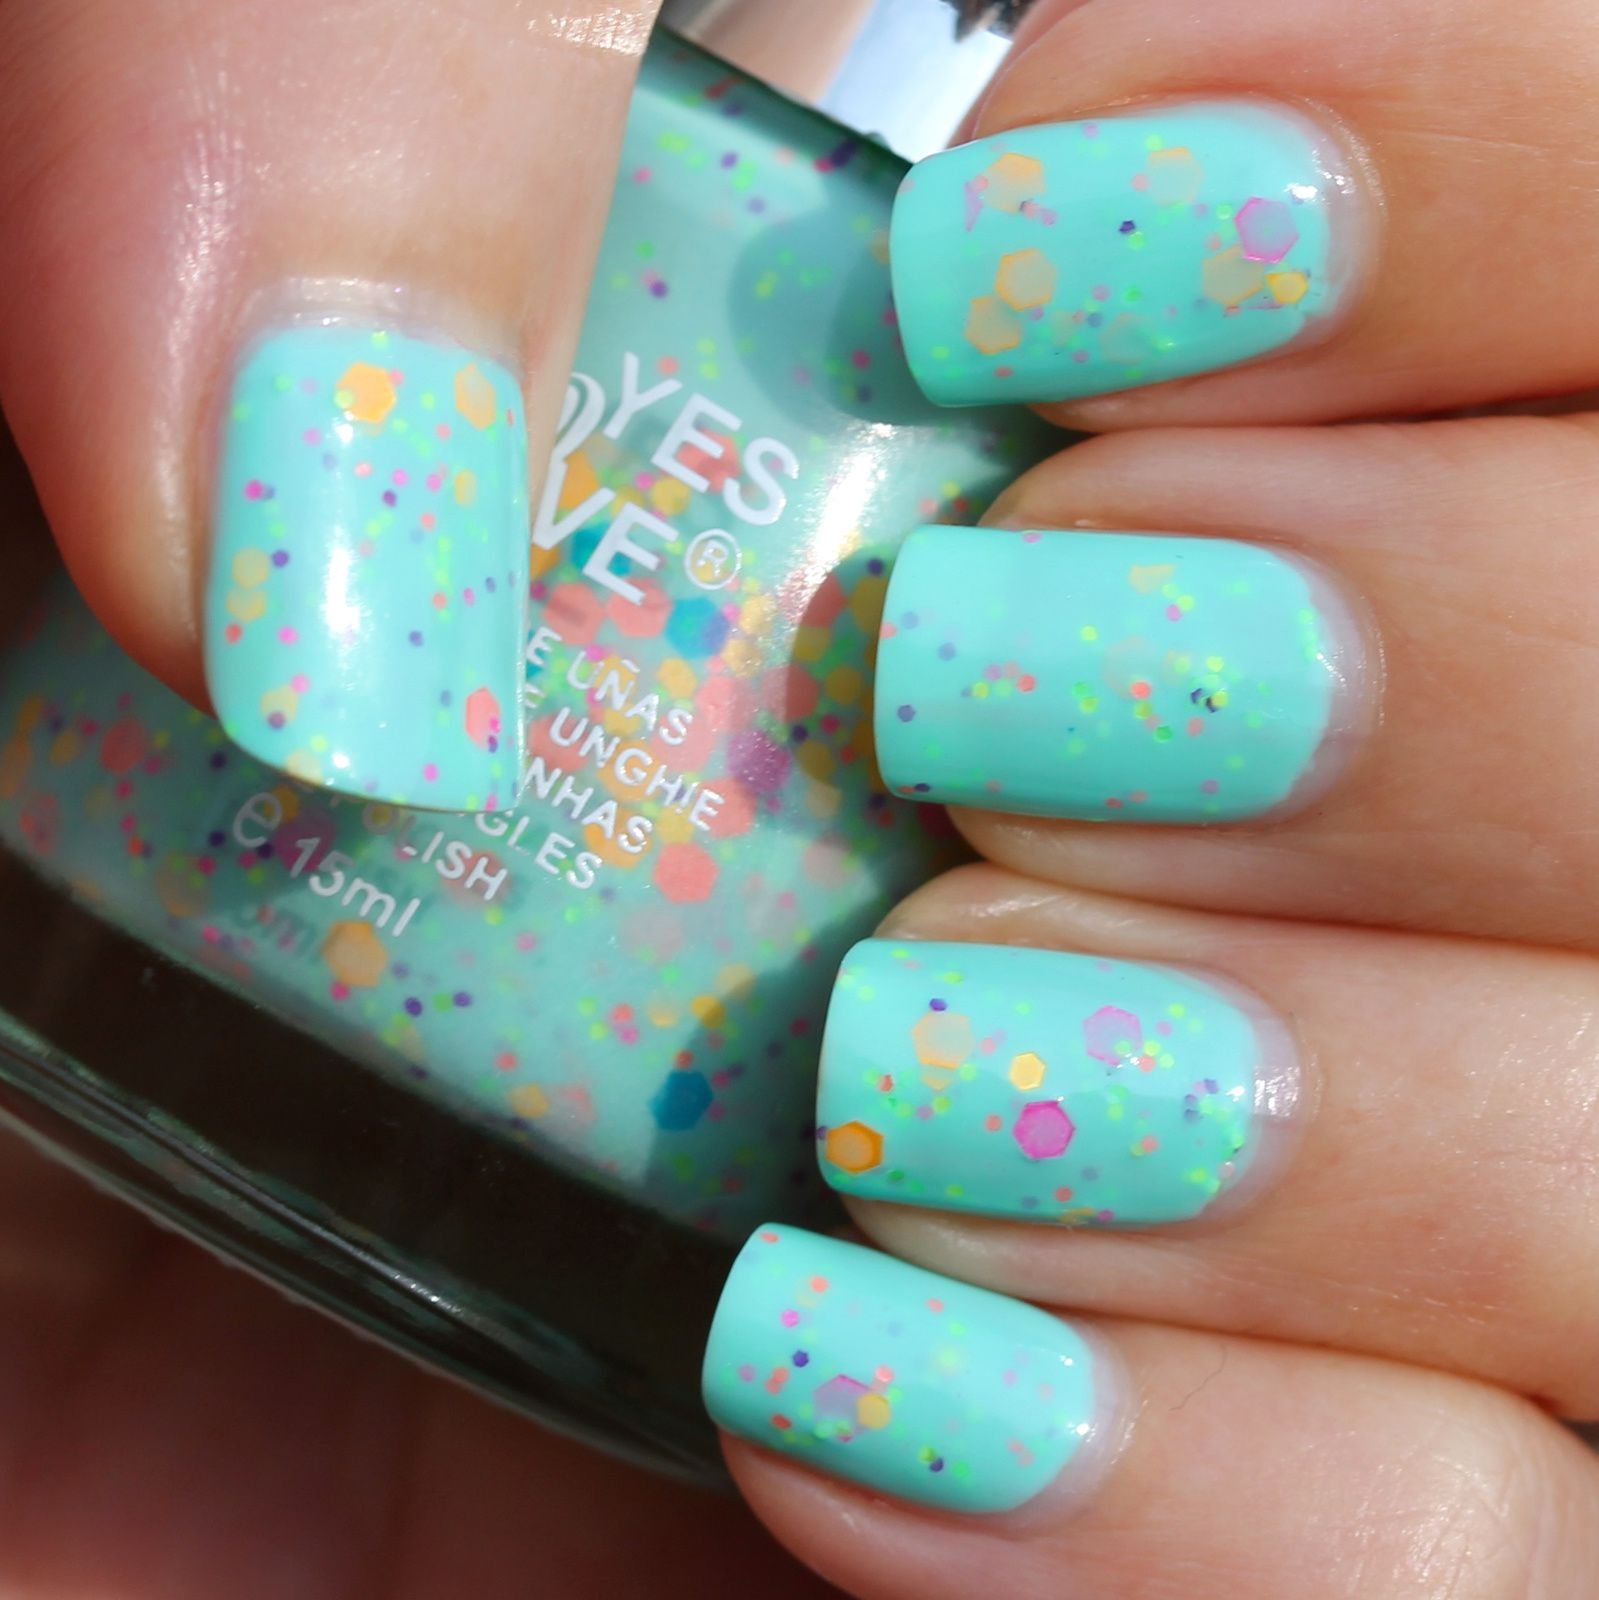 Duri Rejuvacote / Yes Love Neon Glitter G1-3 / Poshe Top Coat